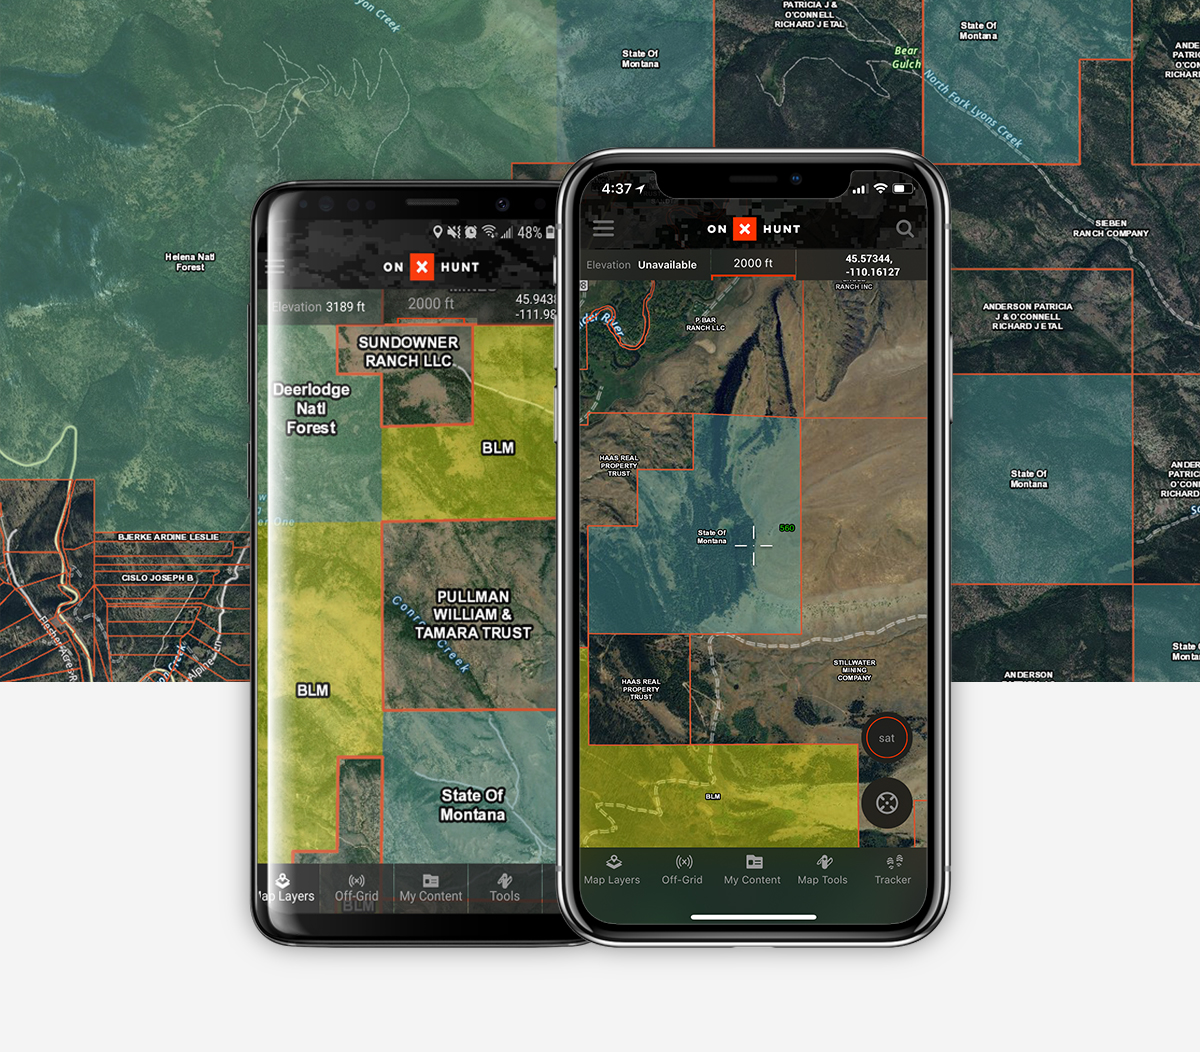 Public and Private land data on the onX Hunt app